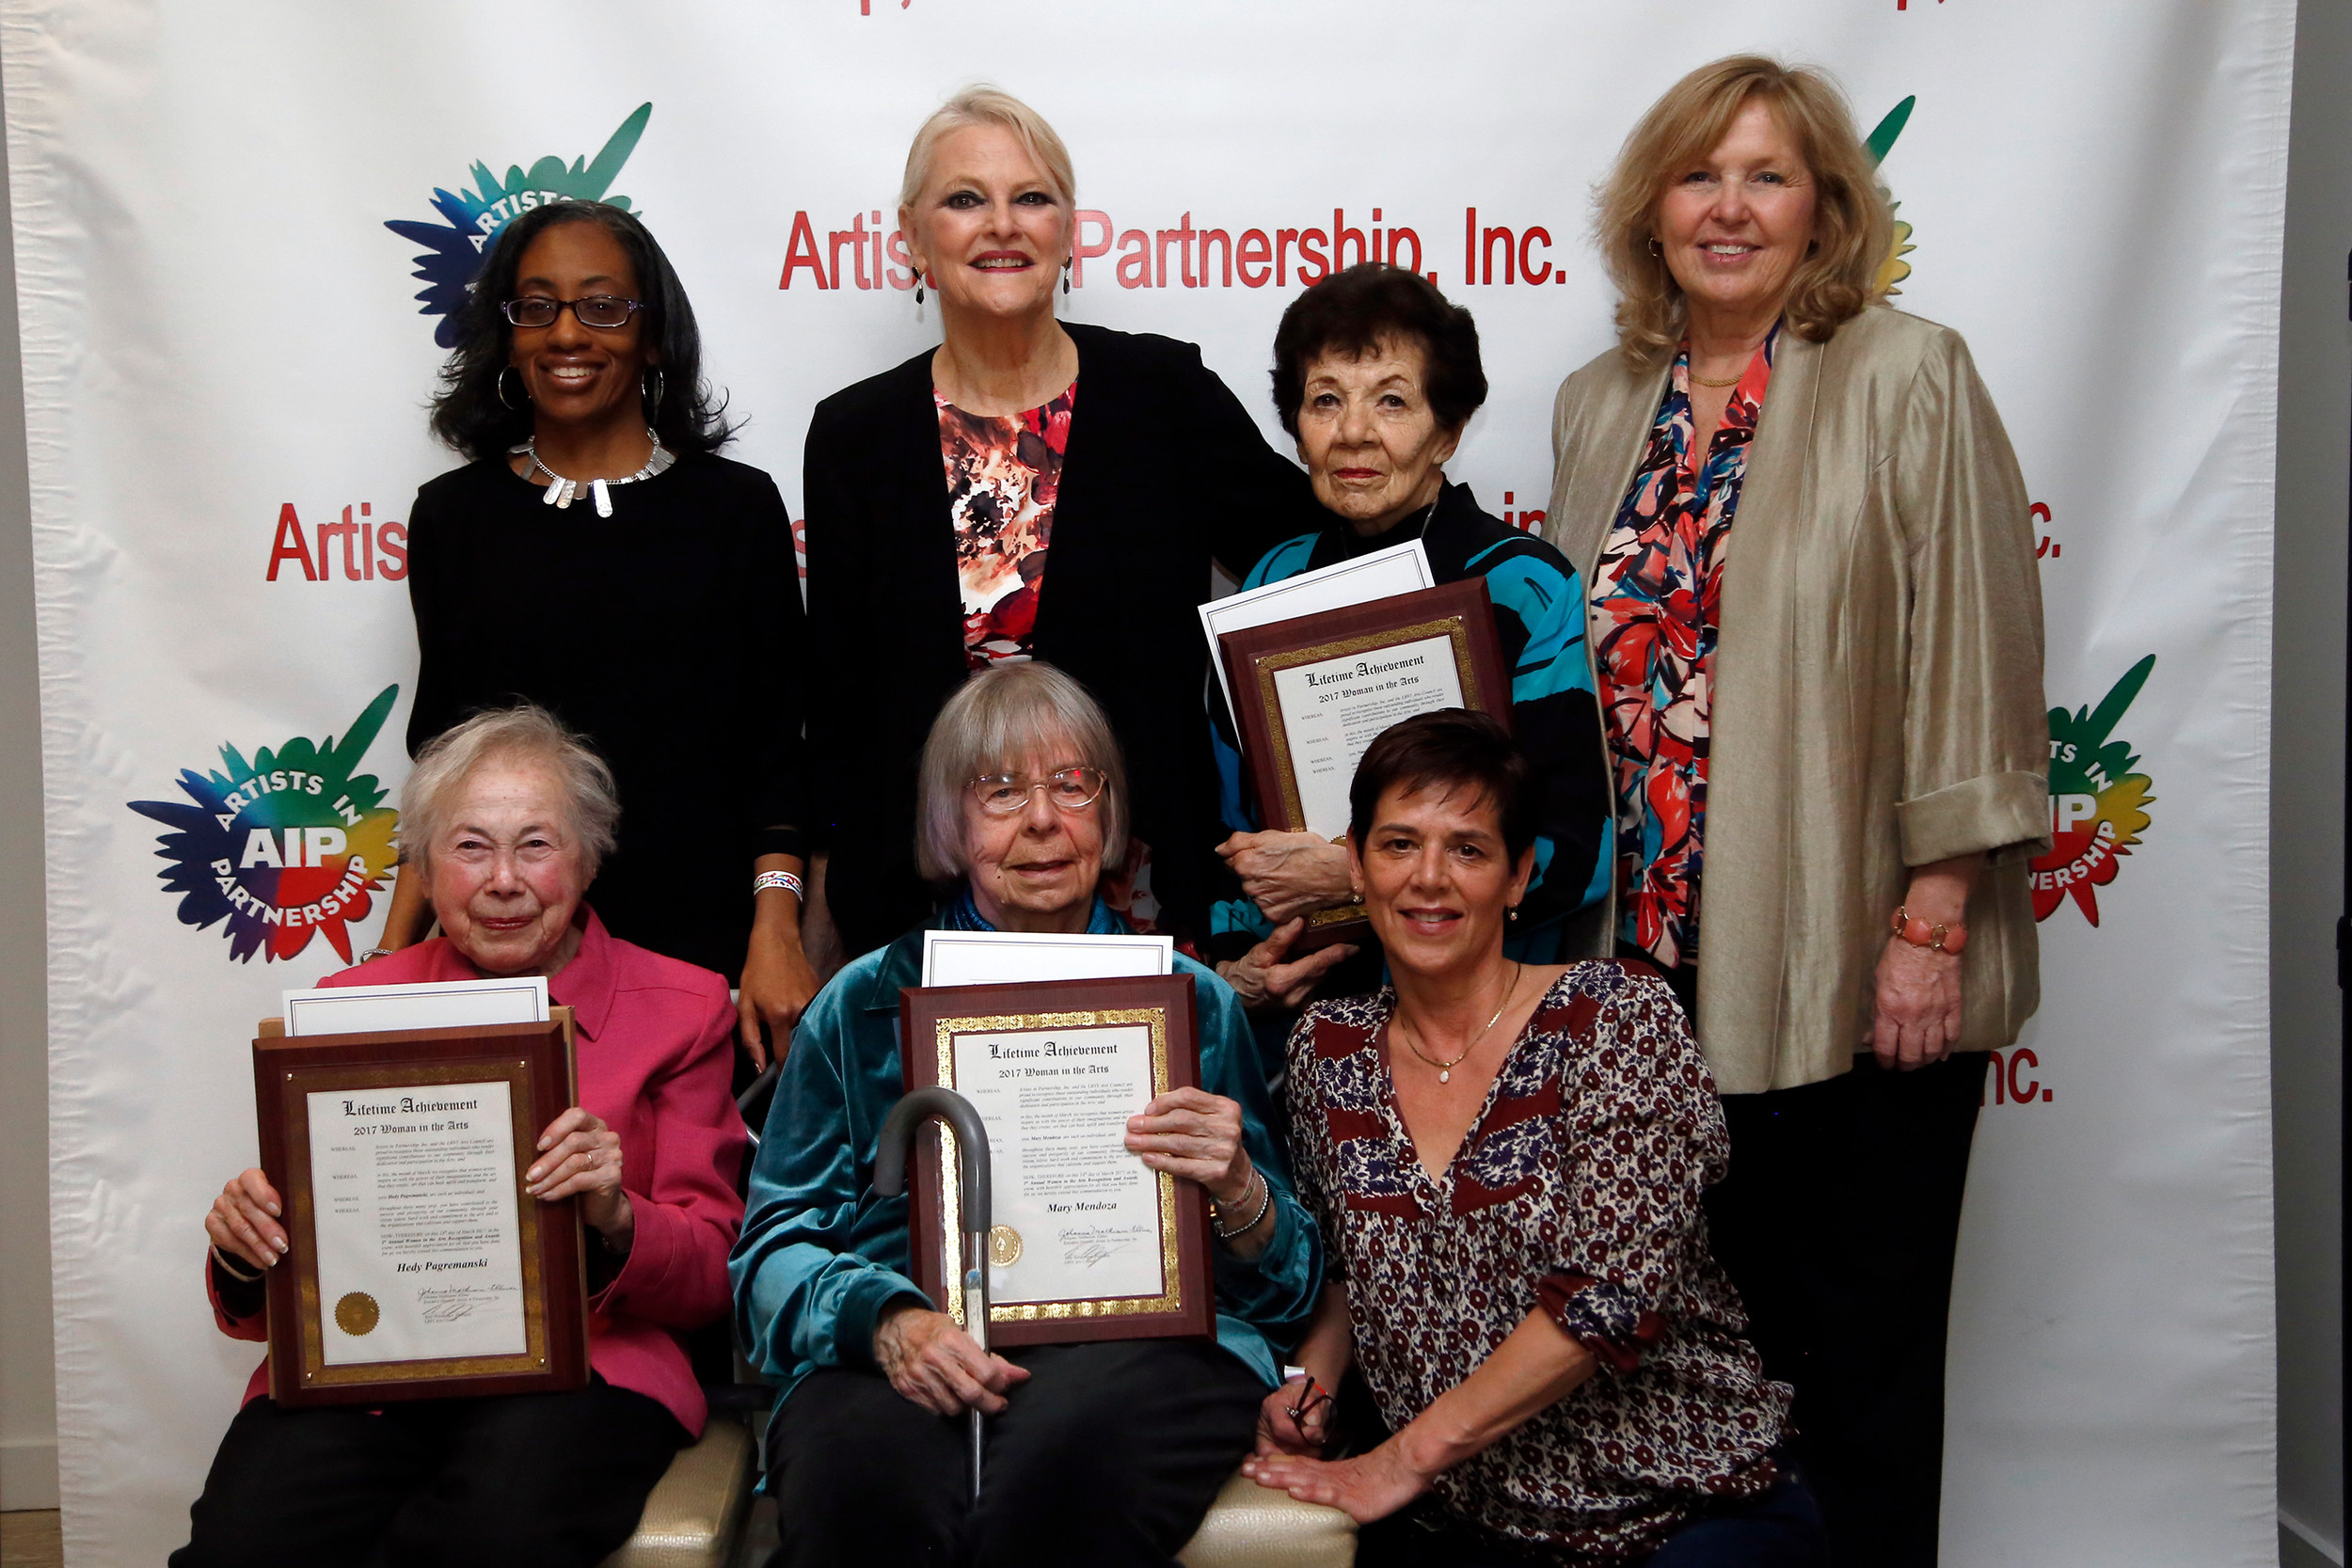 City Councilwoman Anissa Moore, clockwise, from left; Johanna Mathieson-Ellmer, executive director of Youth and Family Services; Naomi Diracles; Nassau County Legislator Denise Ford; Carrie Harris; her mother, Mary Mendoza; and Hedy Pagremanski at the Women in the Arts ceremony on March 24. Diracles, Mendoza and Pagremanski were presented with lifetime achievement awards for their work as artists and support for the arts.